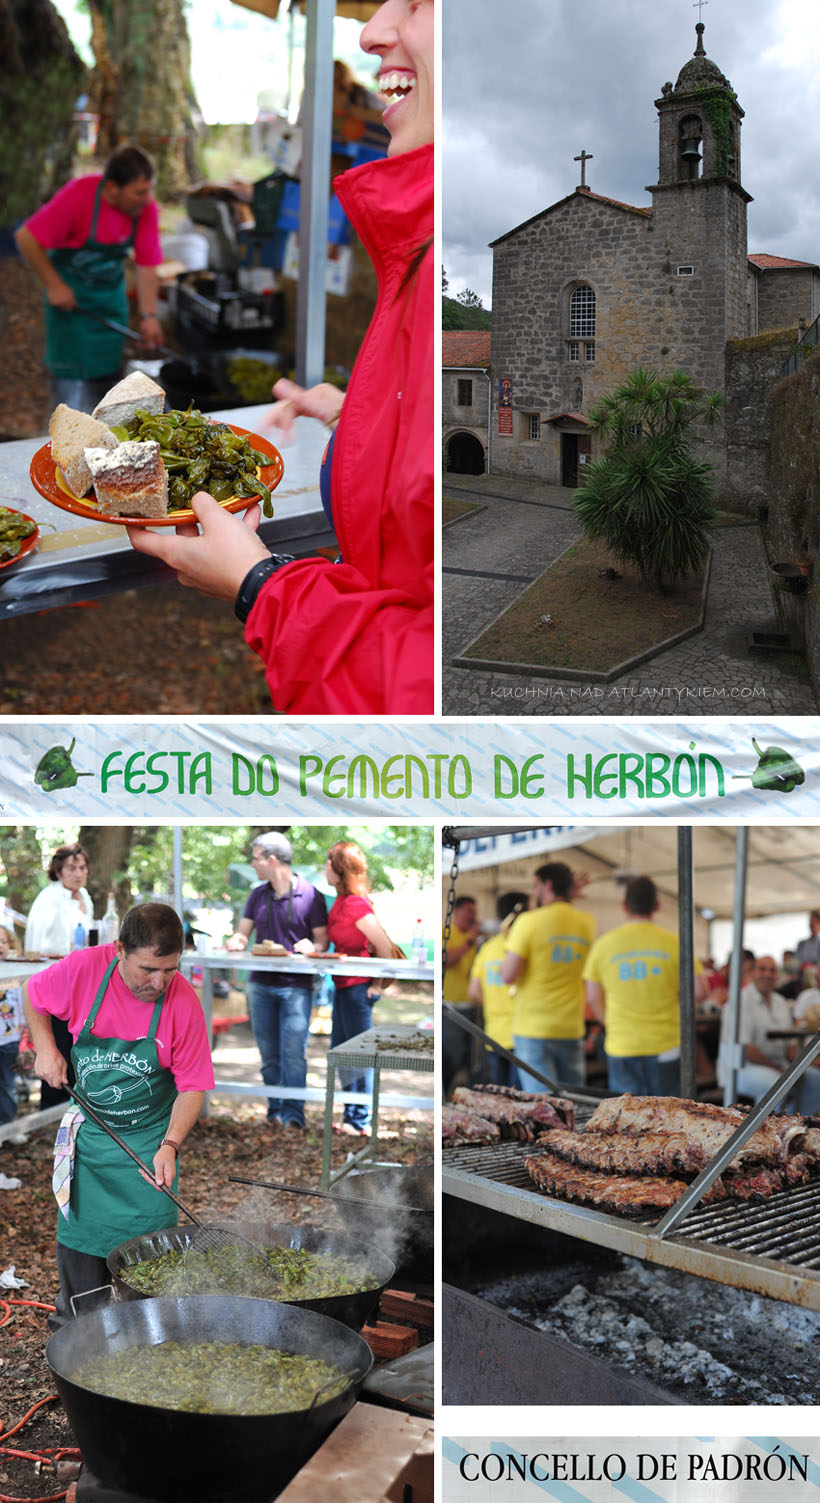 Festa do Pemento de Hebron